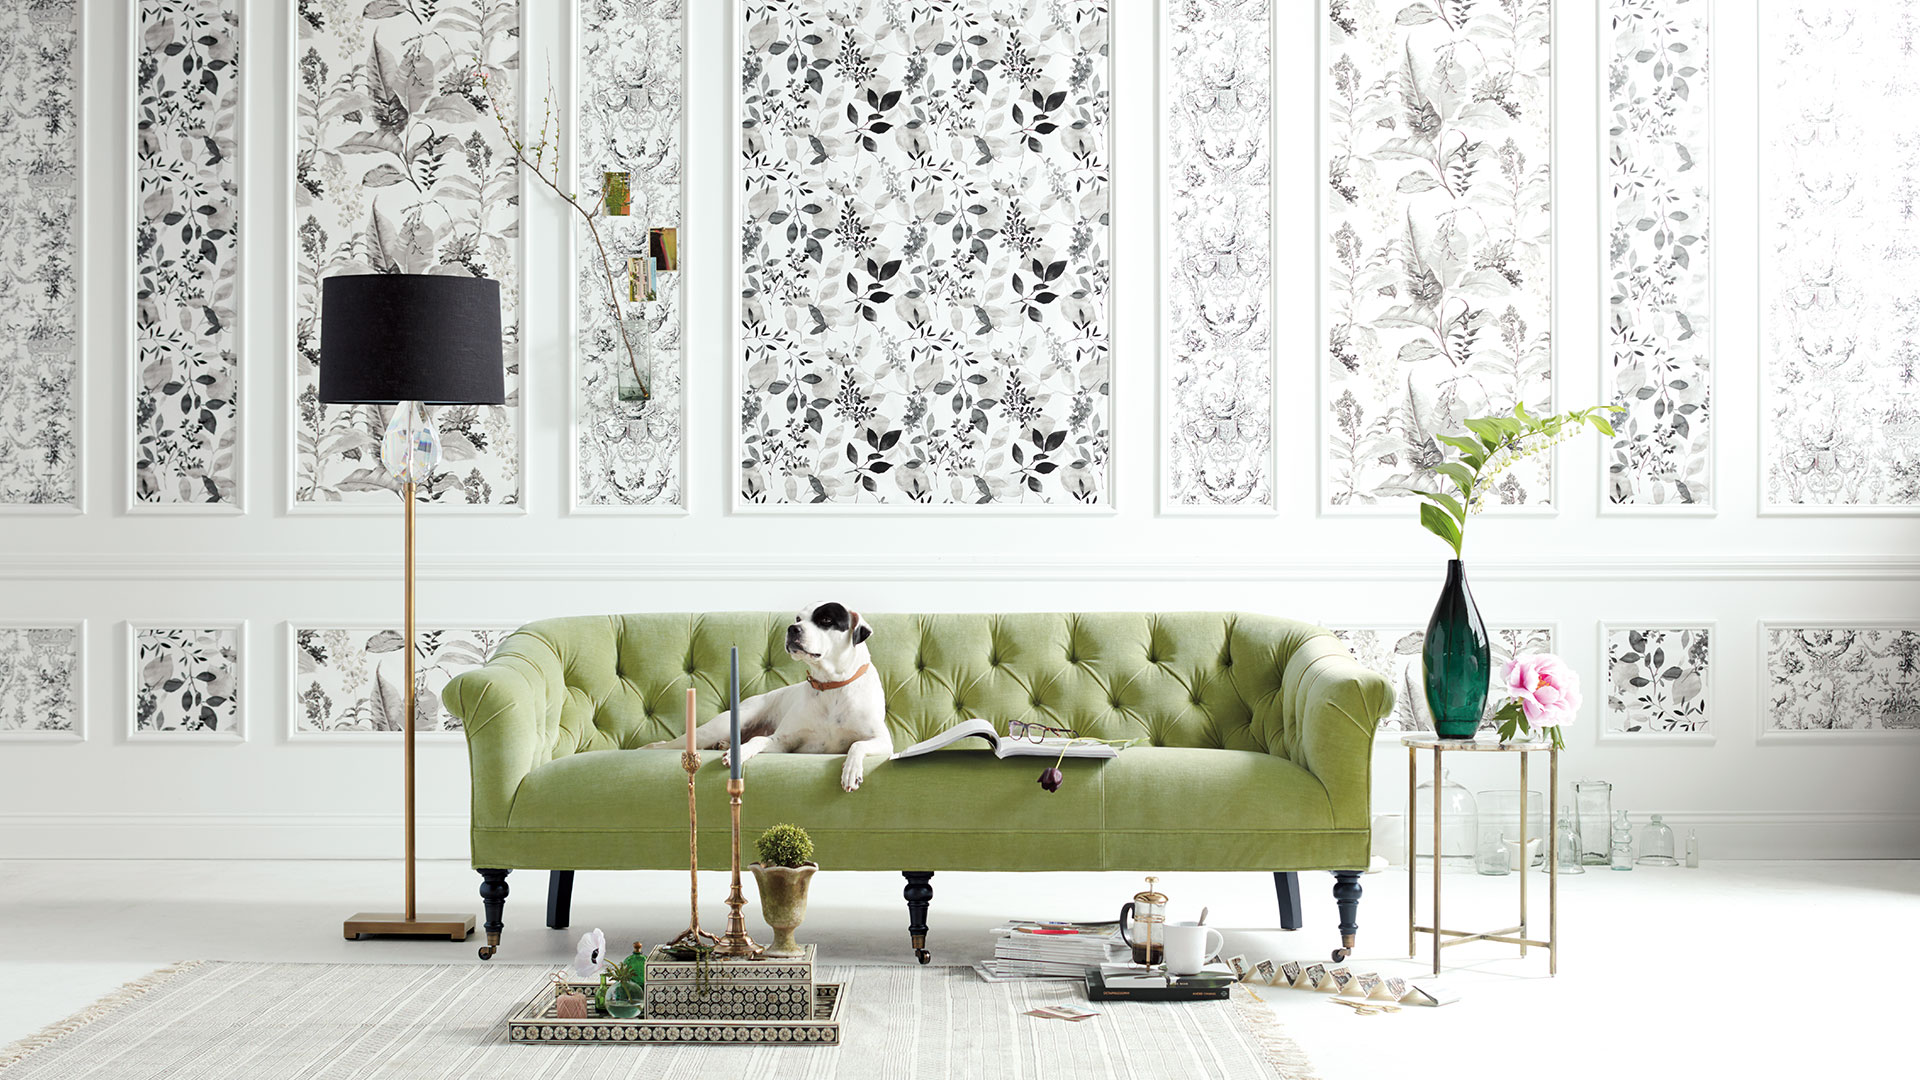 Arhaus Image of Dining Room with Dog on Couch